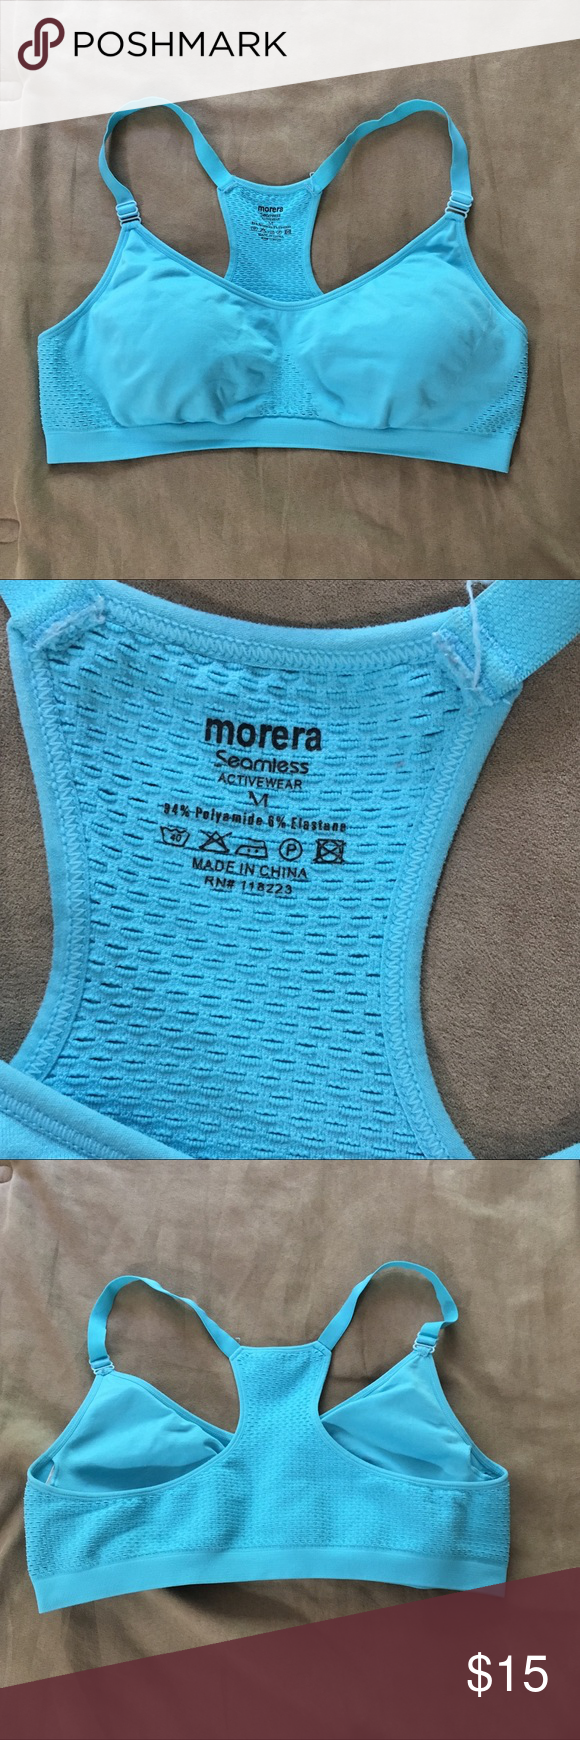 ad0381e666227 Morera seamless sports bra with removable padding Morera seamless activewear  sports bra. Pads are removable. Size medium. 94% polyamide